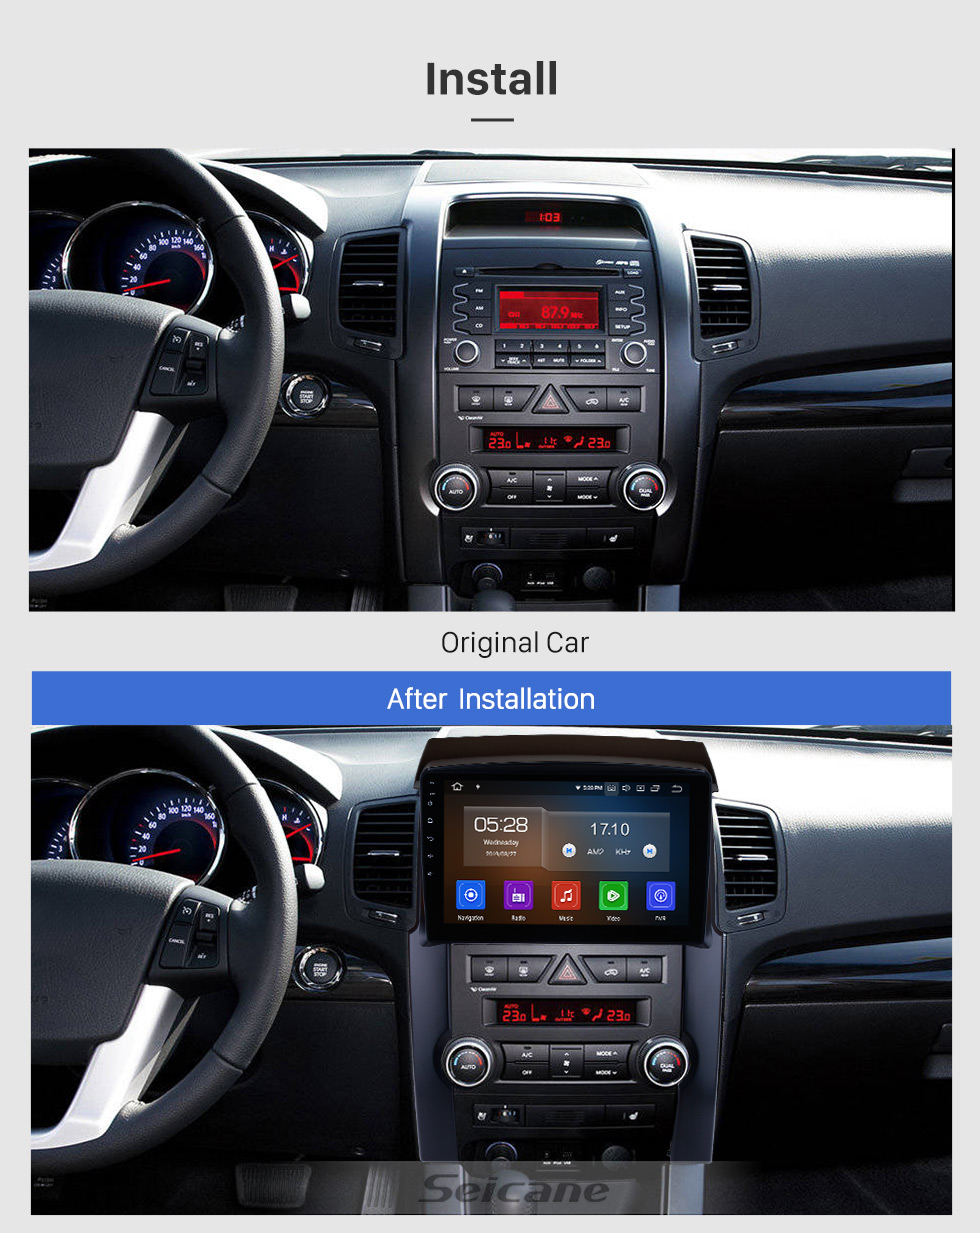 Seicane 10.1 inch 2009 2010 2011 2012 KIA Sorento Android 9.0 GPS Navigation Radio Bluetooth 4G WIFI Rearview Camera USB DVD Player TPMS Backup Camera 1080P